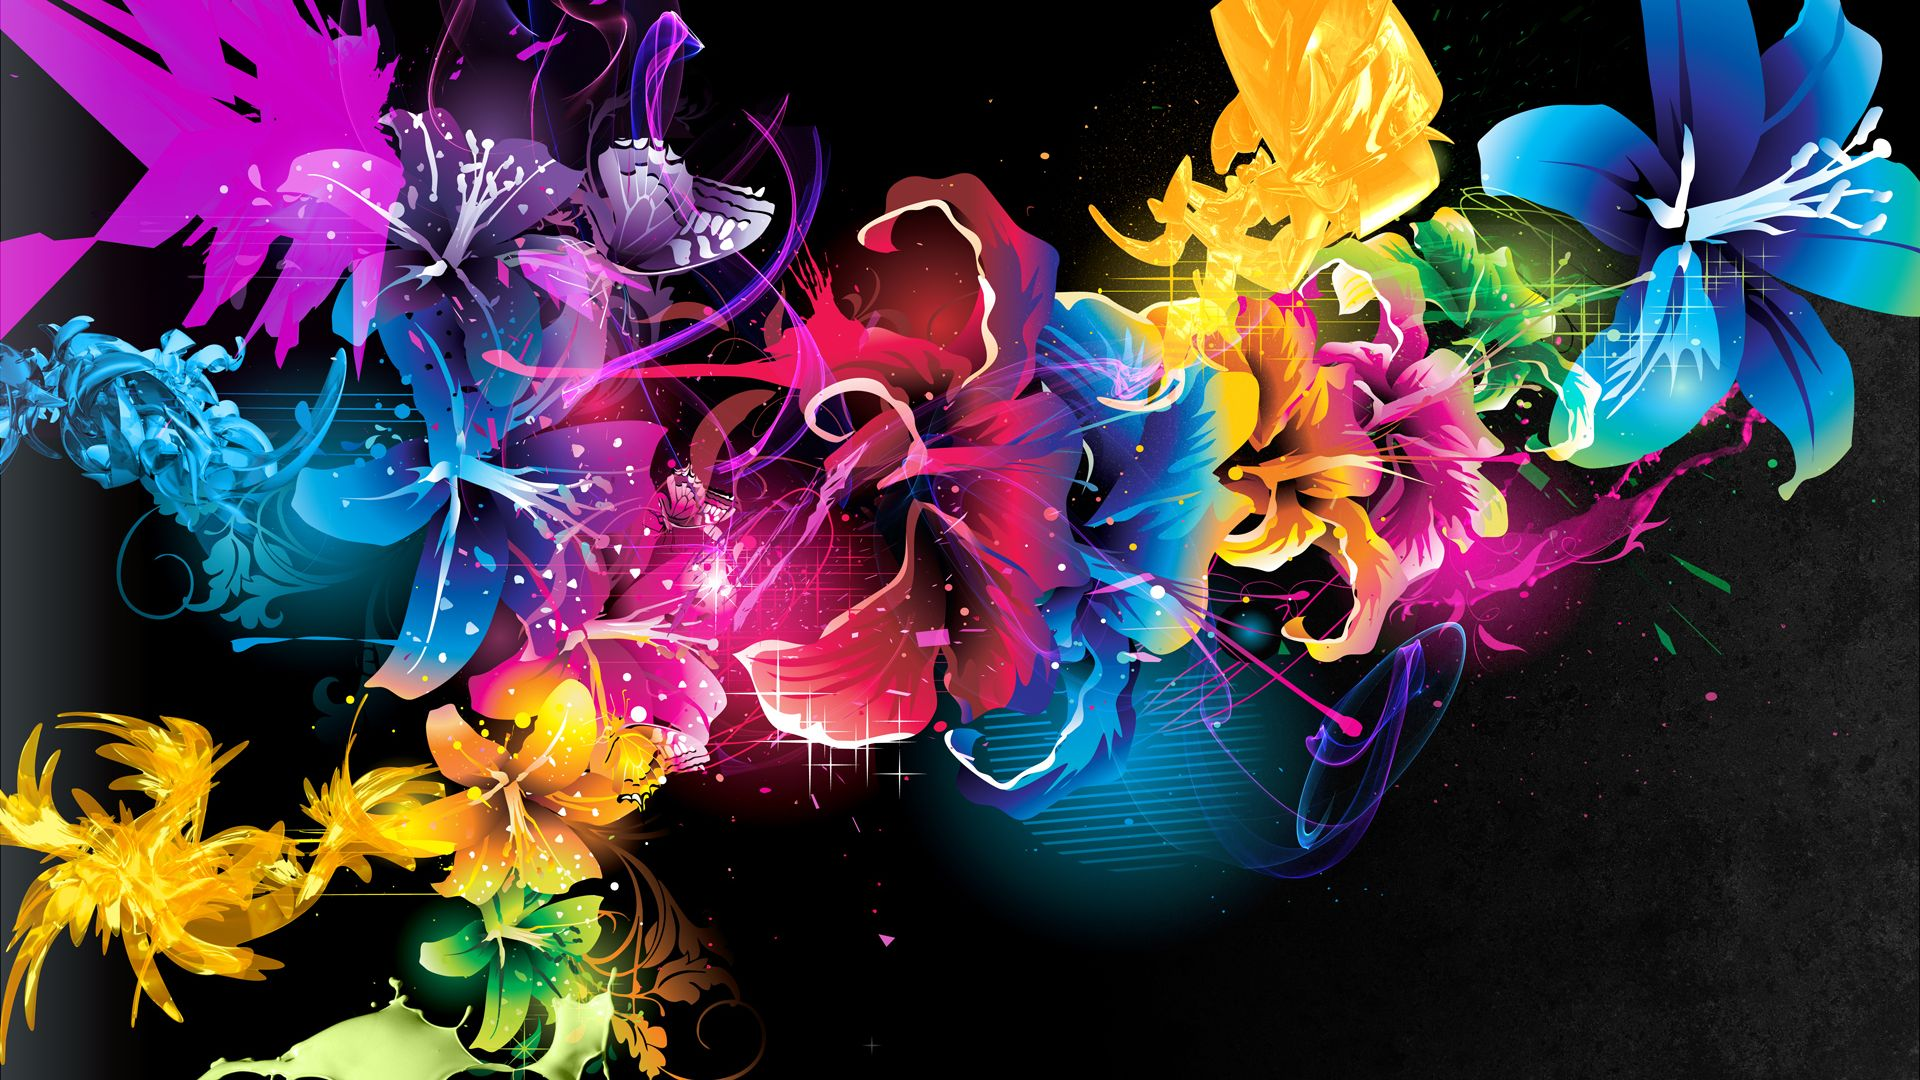 Colorful Flower Abstract Art Wallpaper - Colorful Flower Abstract Art - HD Wallpaper